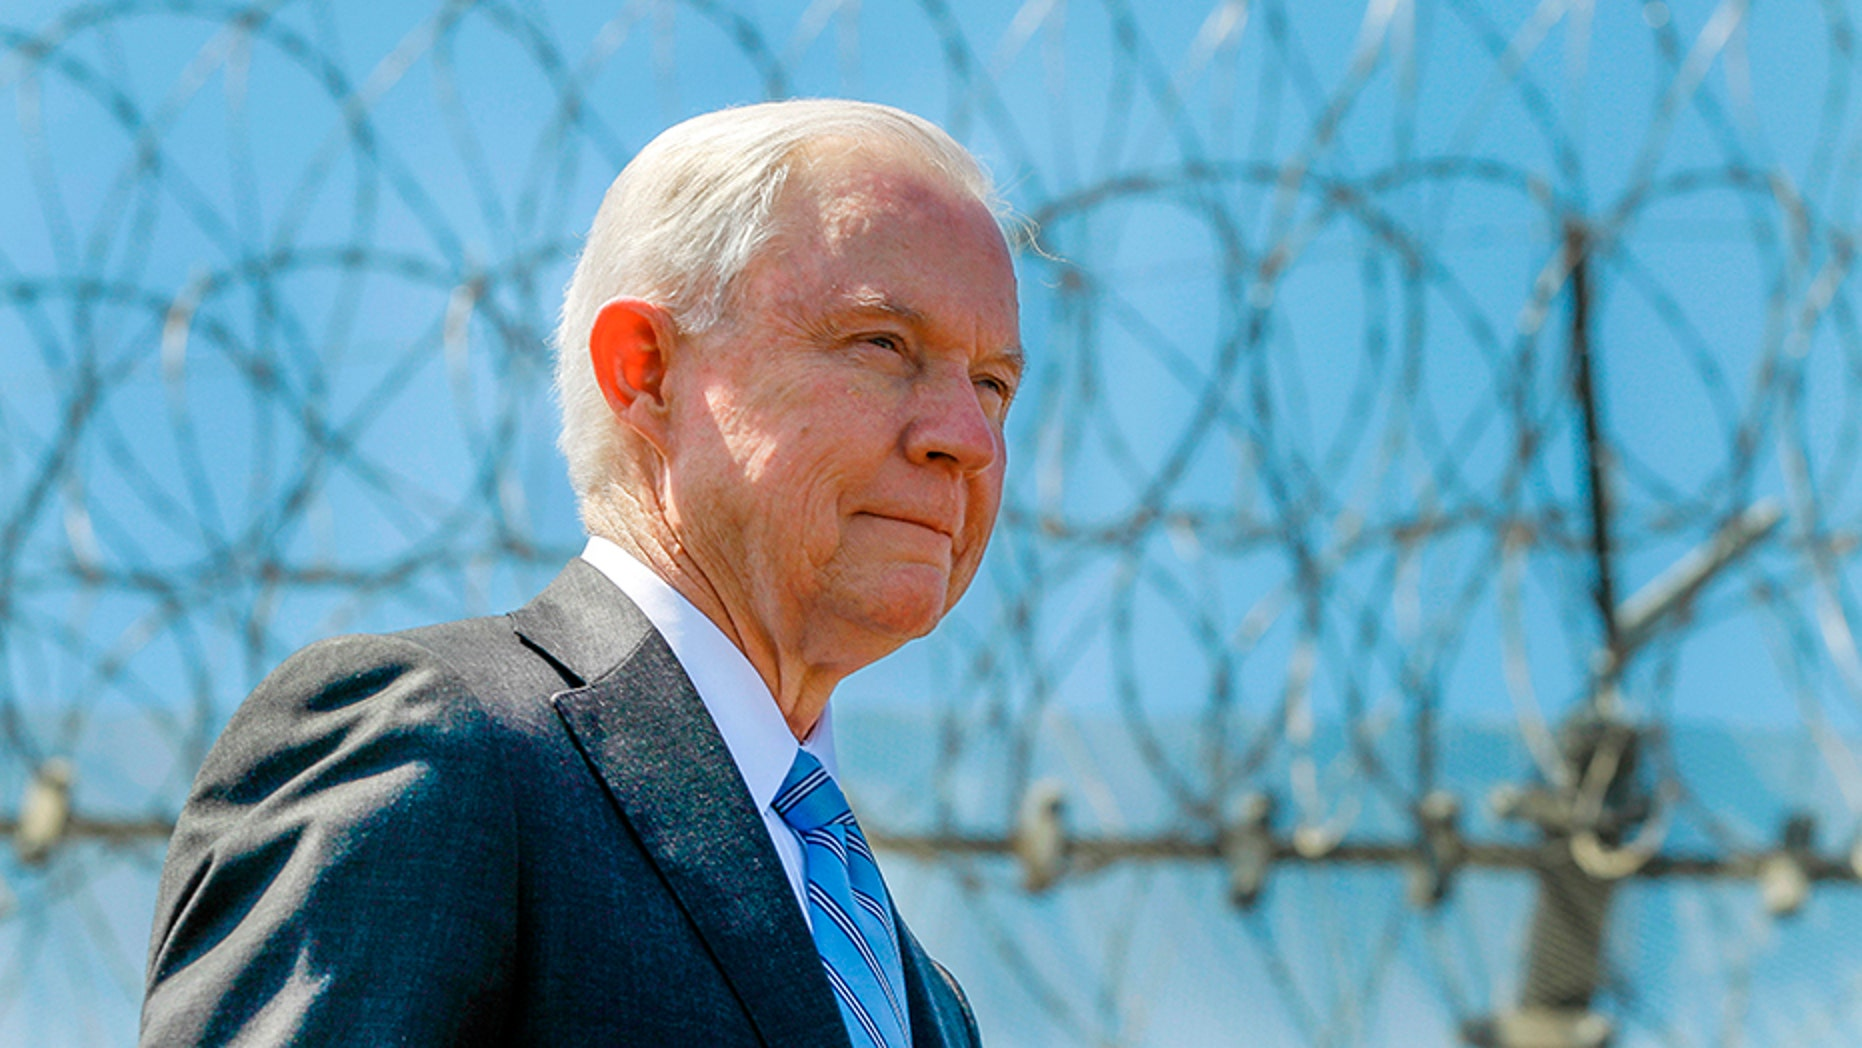 In April 21, 2017, file photo, Attorney General Jeff Sessions stands near a secondary border fence during a news conference at the U.S.-Mexican border next to the Brown Field Border Patrol Station in San Diego.